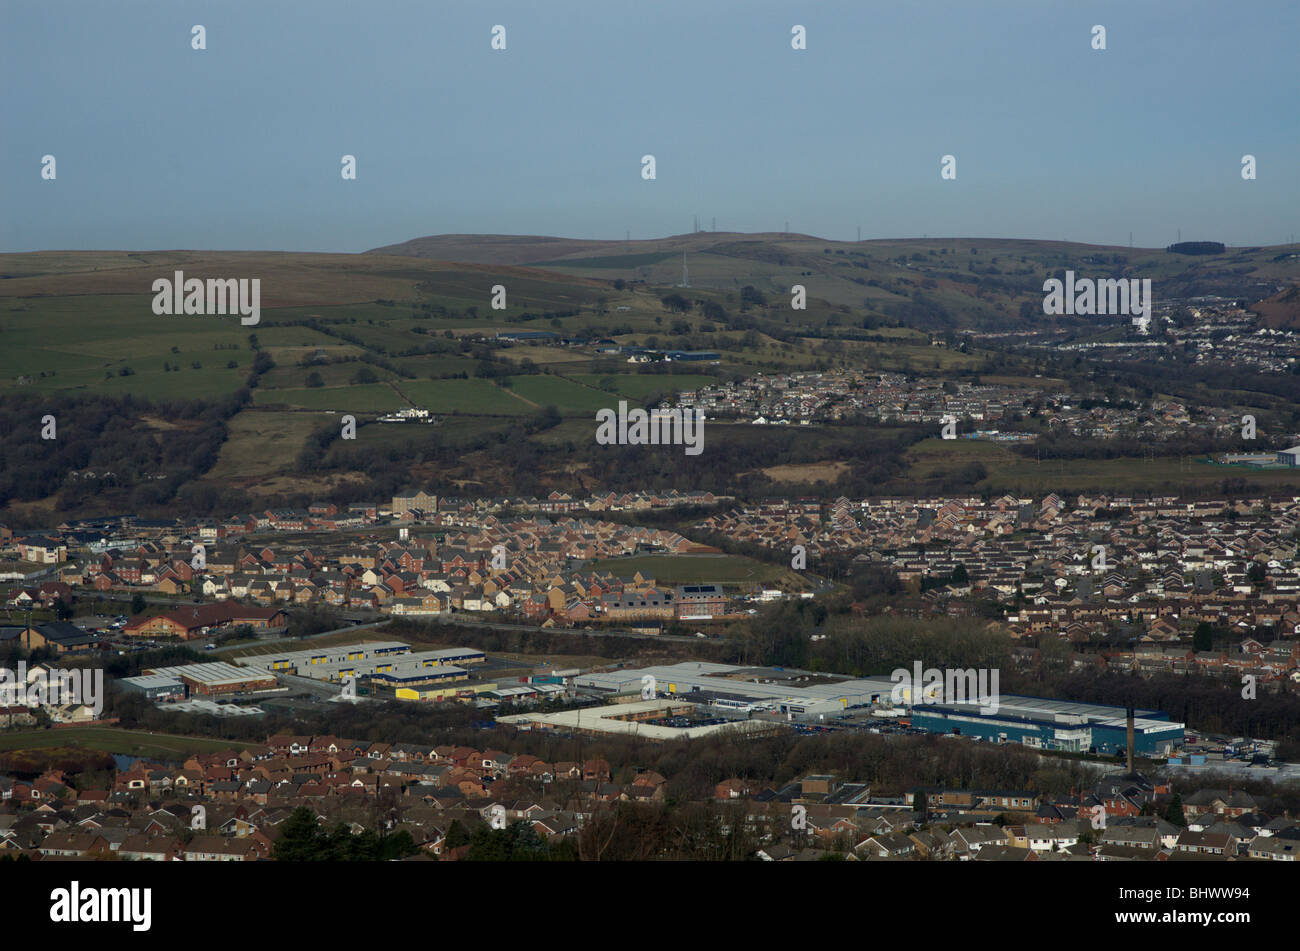 Factories in Caerphilly, with housing and farmland in the distance - Stock Image